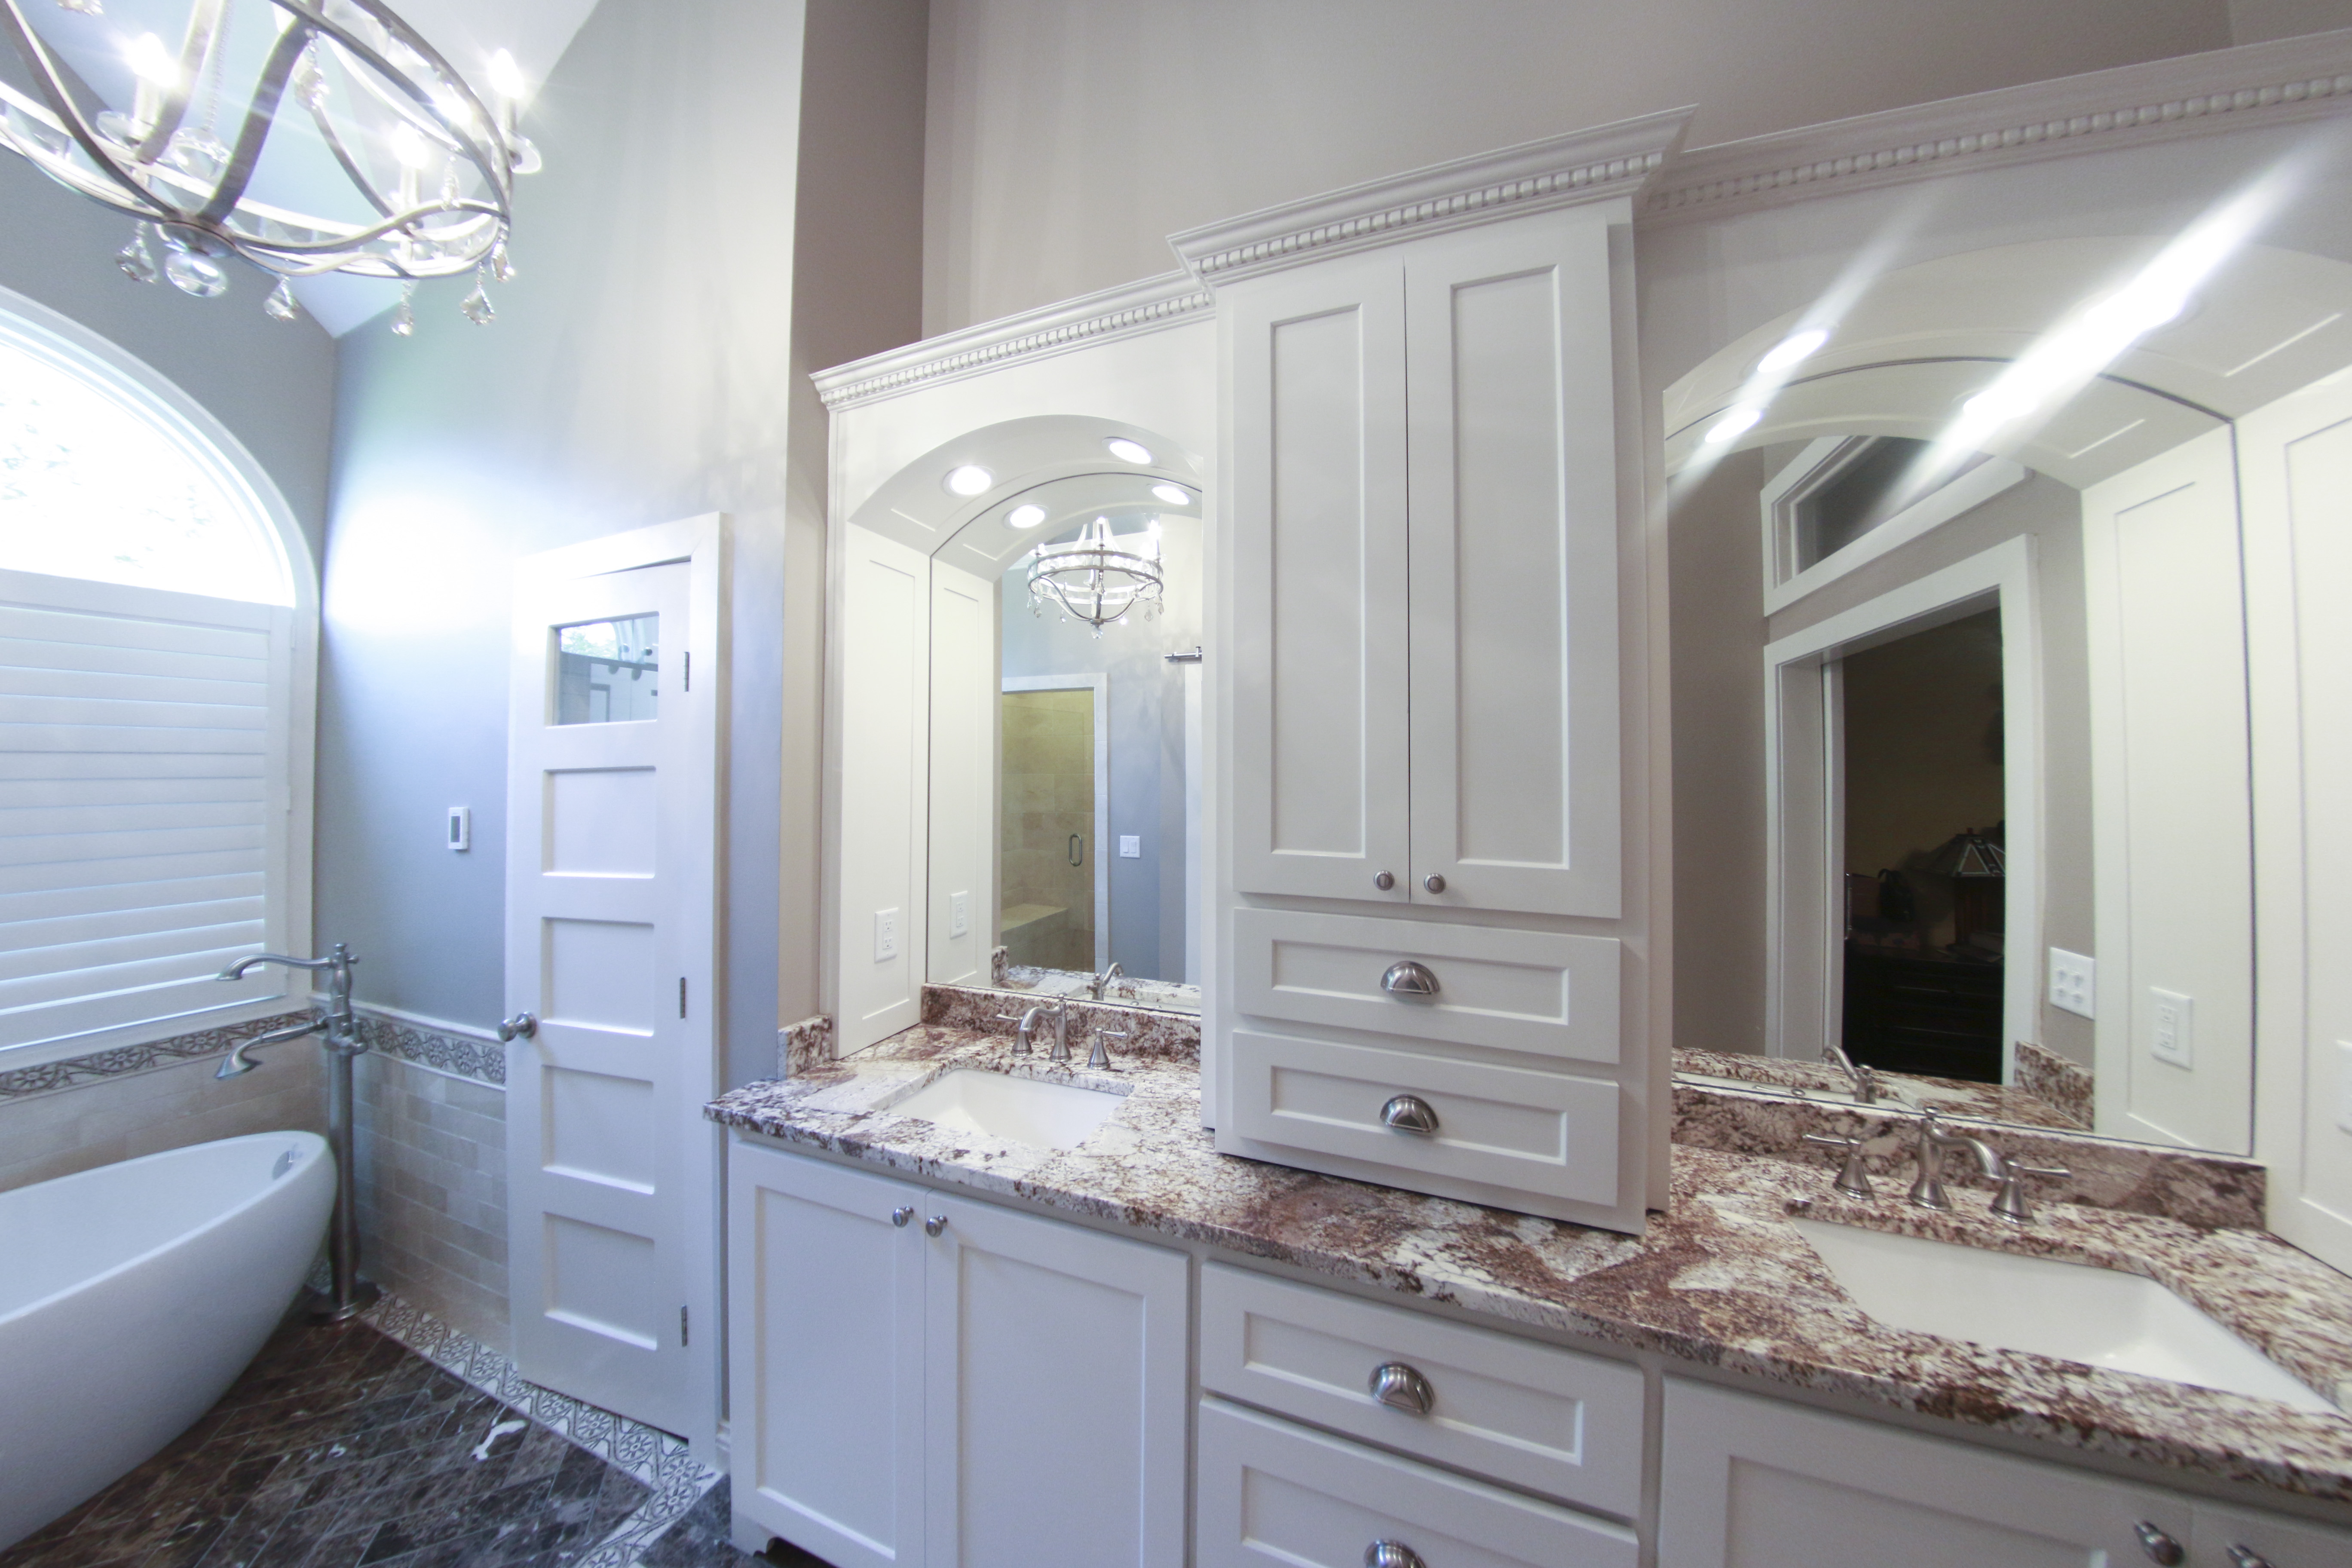 Bathroom Remodel In Kansas City Lee 39 S Summit Done Right